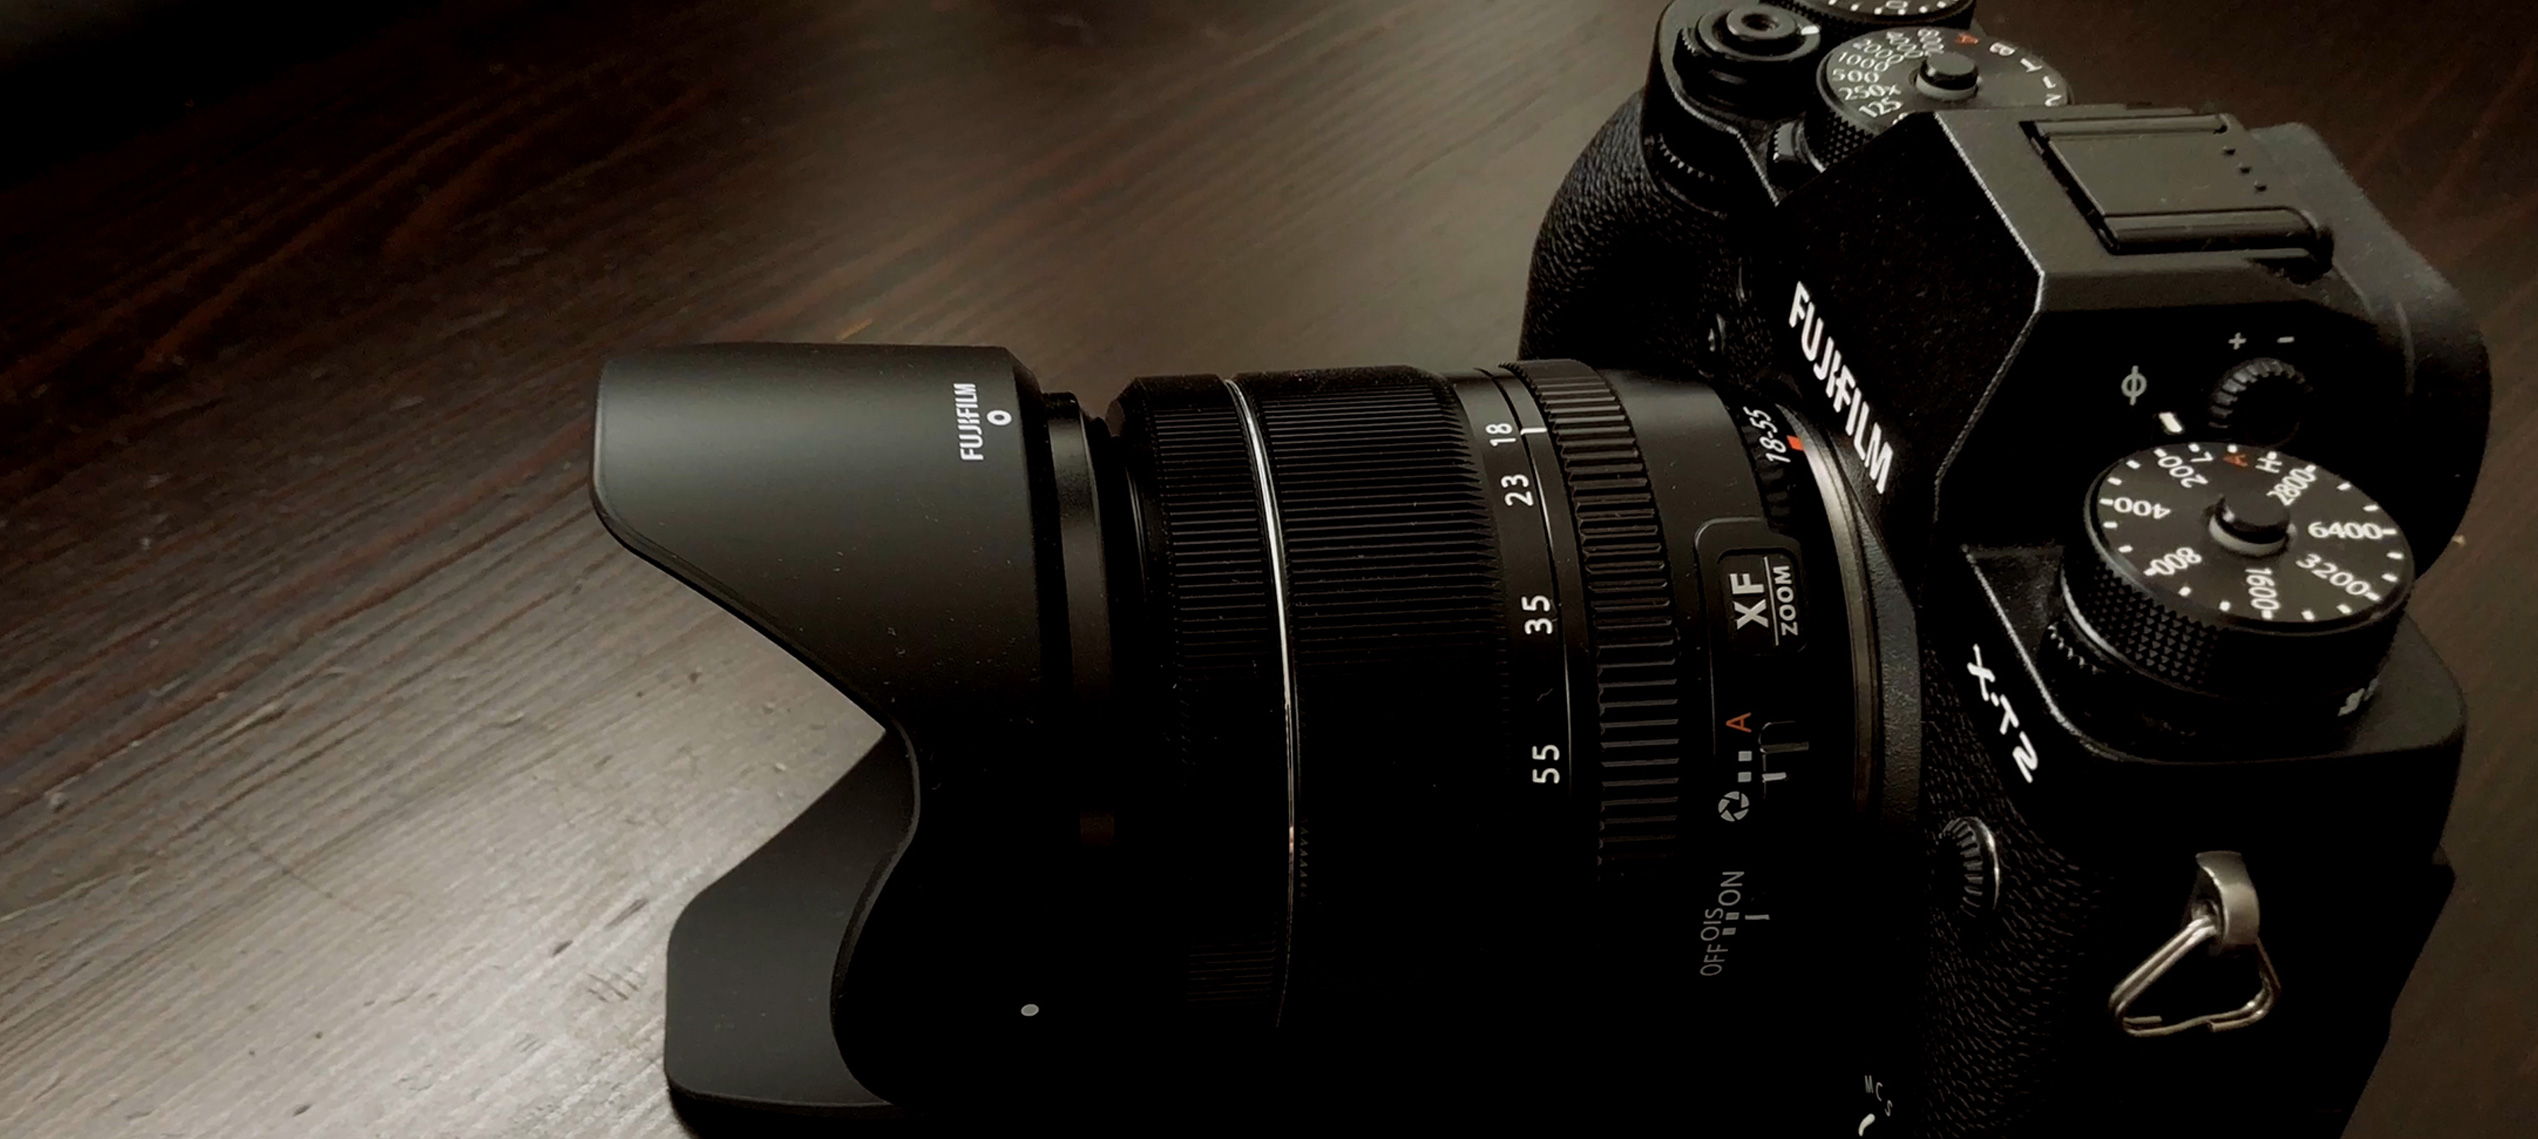 Fujinon 18-55 – The ultimate kitlens? REVIEW